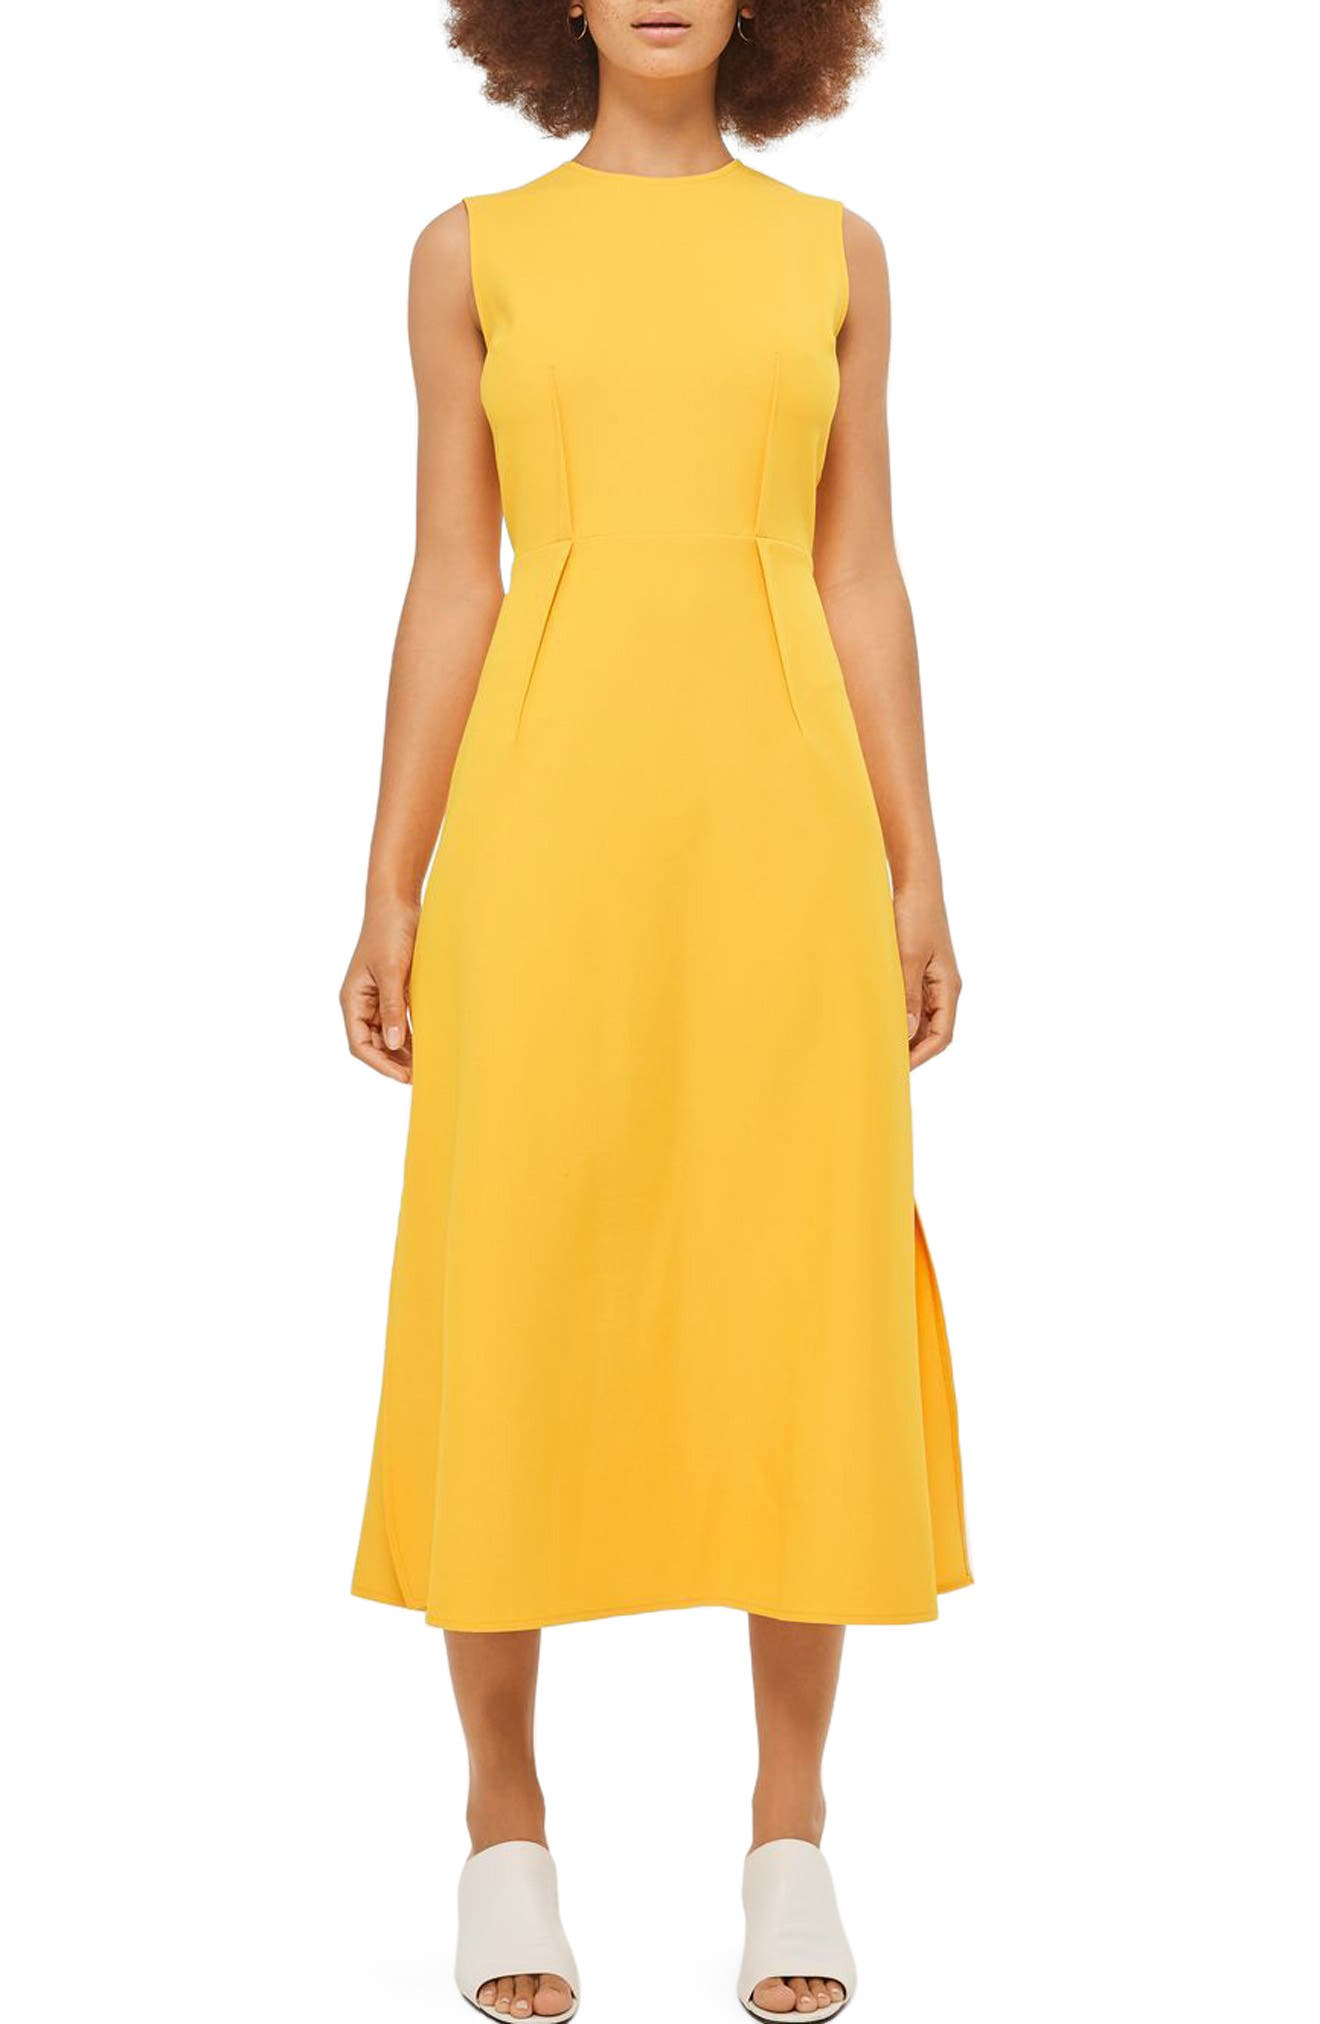 Topshop Open Back Tie Midi Dress